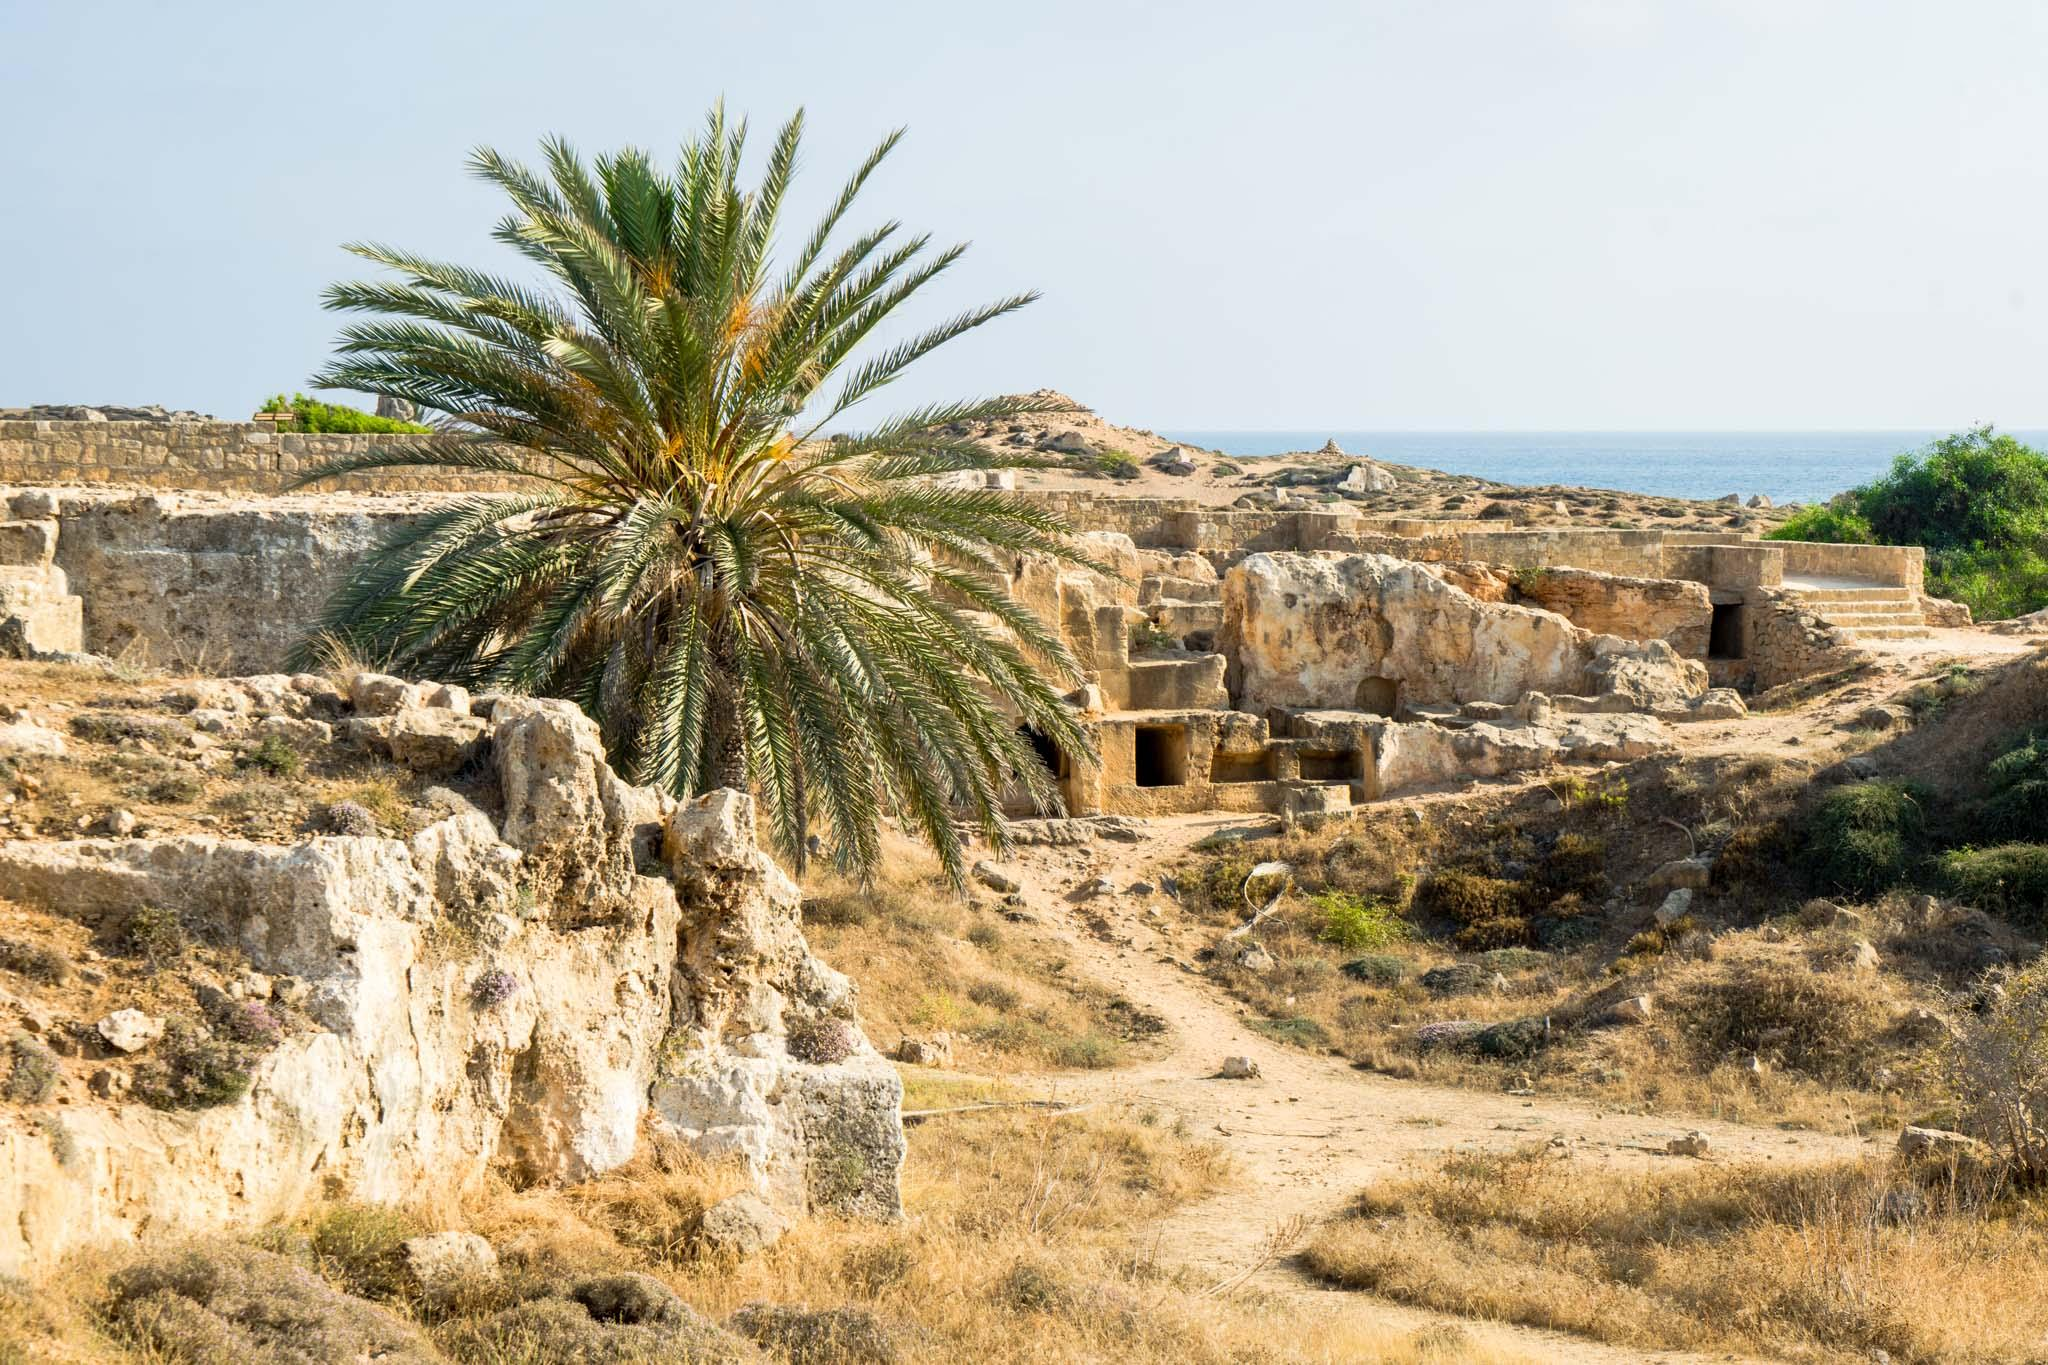 The Tombs of the Kings was used from about the 4th century BC until the 3rd century AD as the burial place for the wealthy and powerful of Pafos. - © Michael Turtle